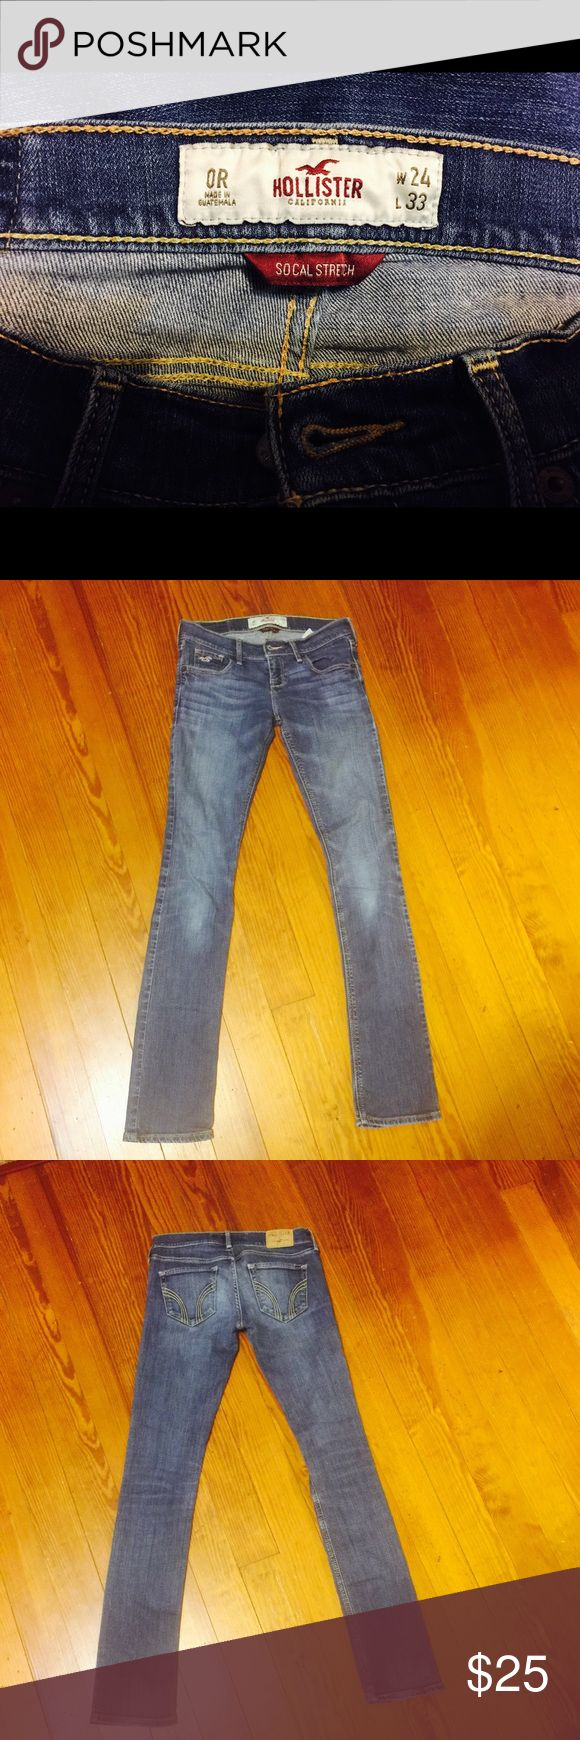 Hollister social stretch jeans Hollister brand socials jeans zero our Laguna skinny waist 24 inches inseam 33 inches Front rise 7 inches/  back rise  11 inches (Shop and feel good about it 😁. Part of the money u spend goes to Purple Heart Foundation 💜 Hollister Jeans Skinny